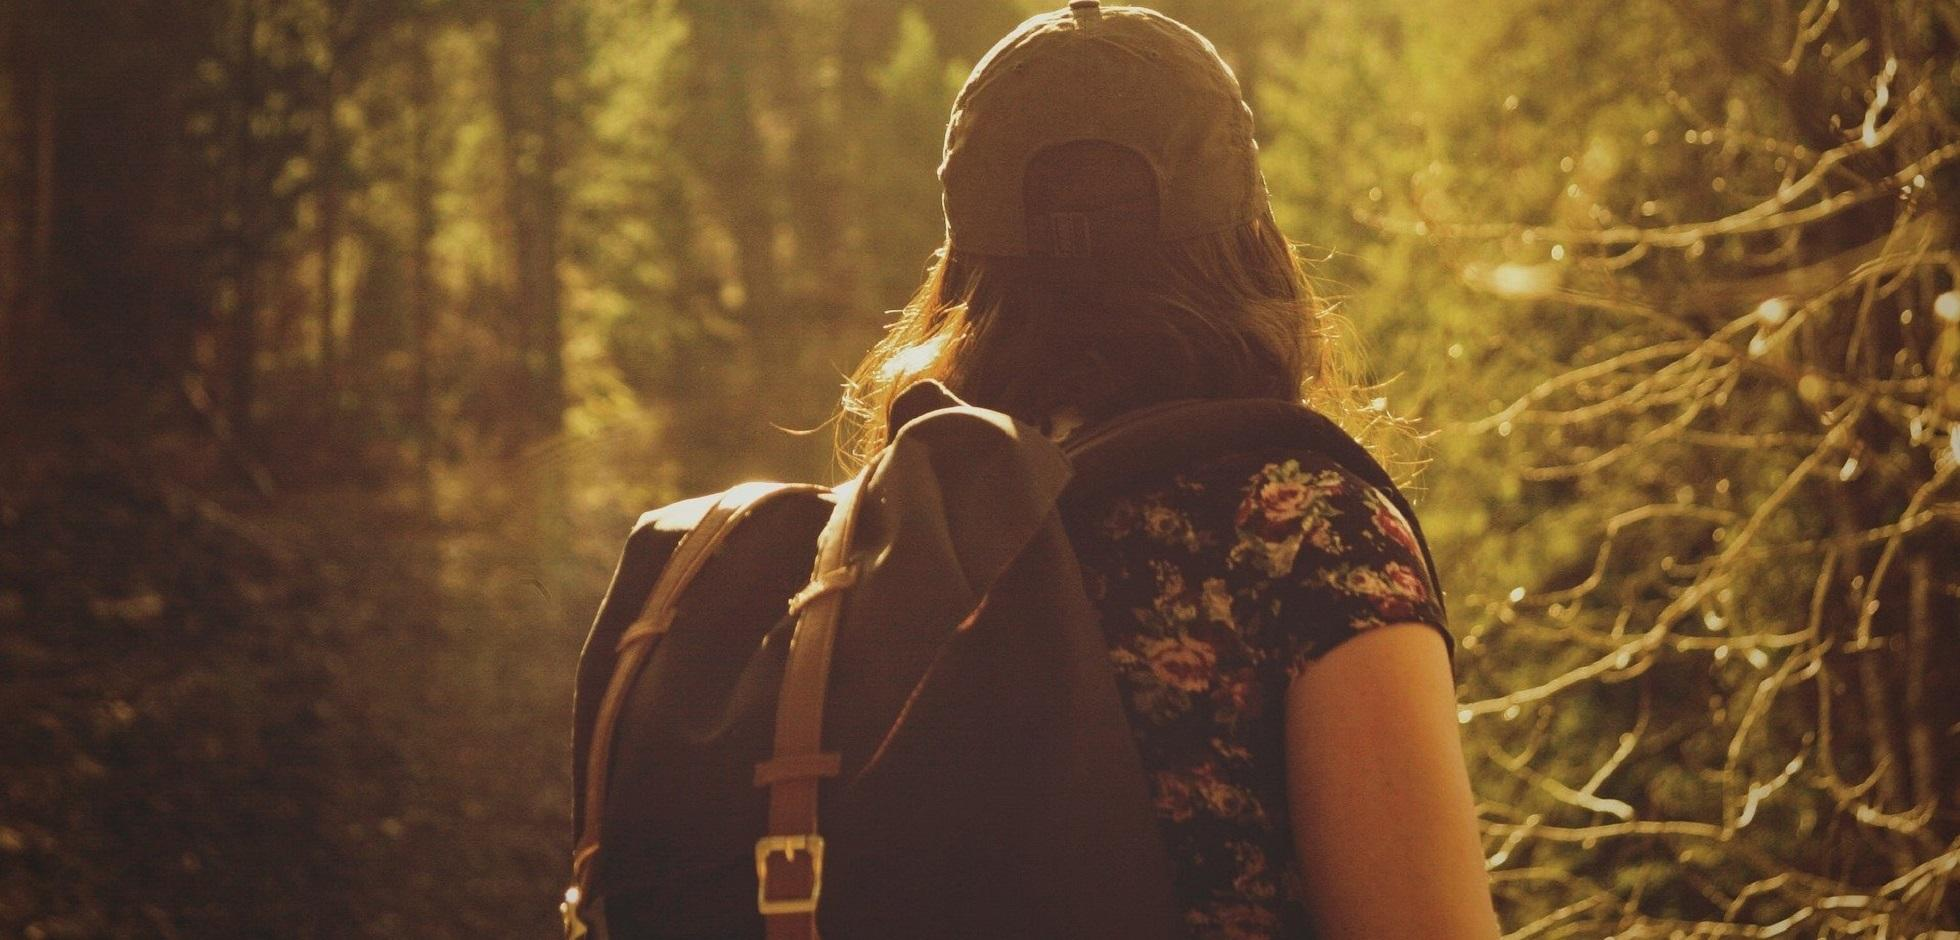 A female with a backpack hiking in a forest